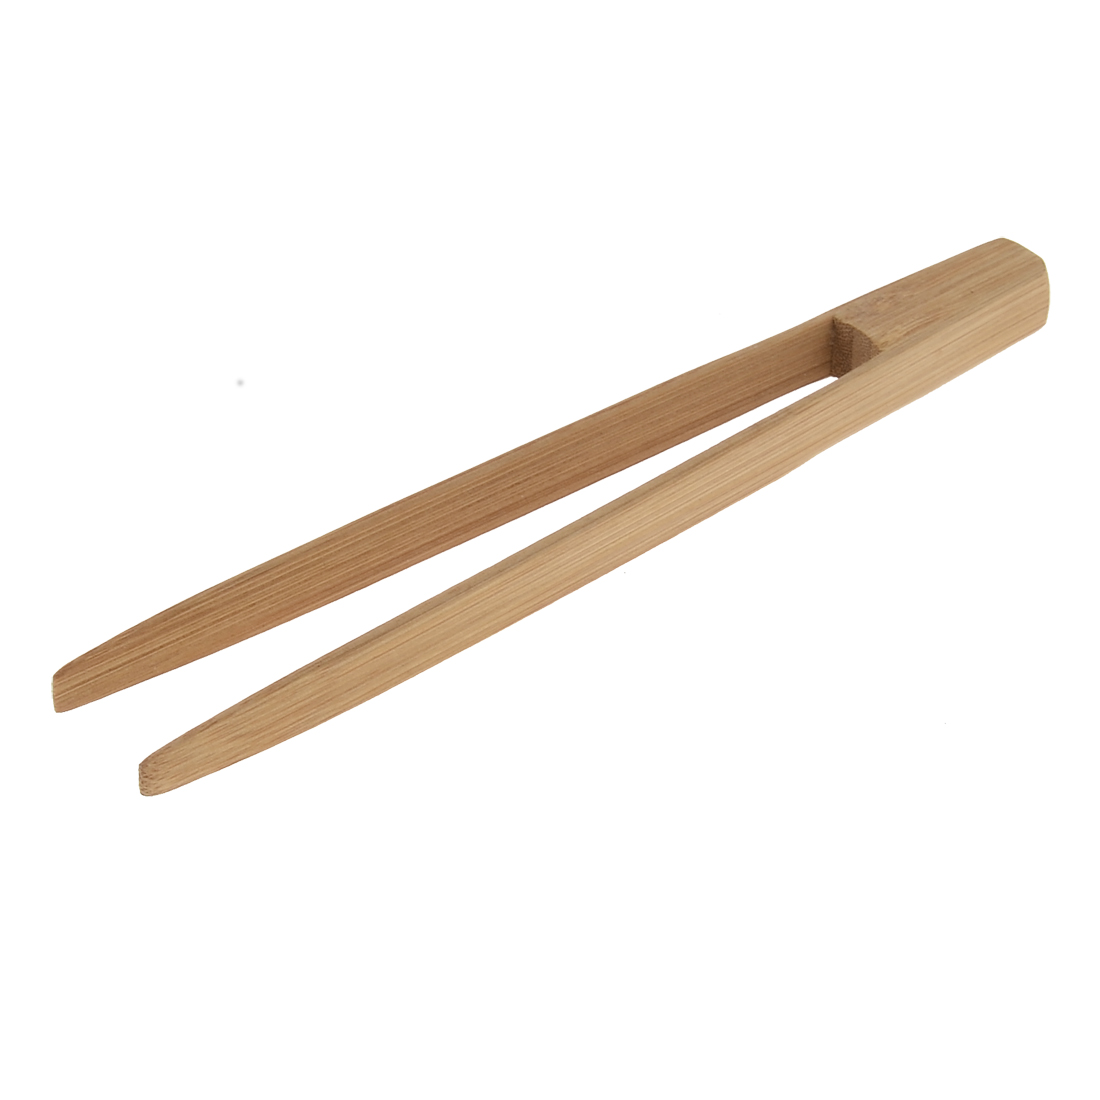 Household Kitchen Bamboo Food Cake Bread Tongs Clamp Clip 20cm Length